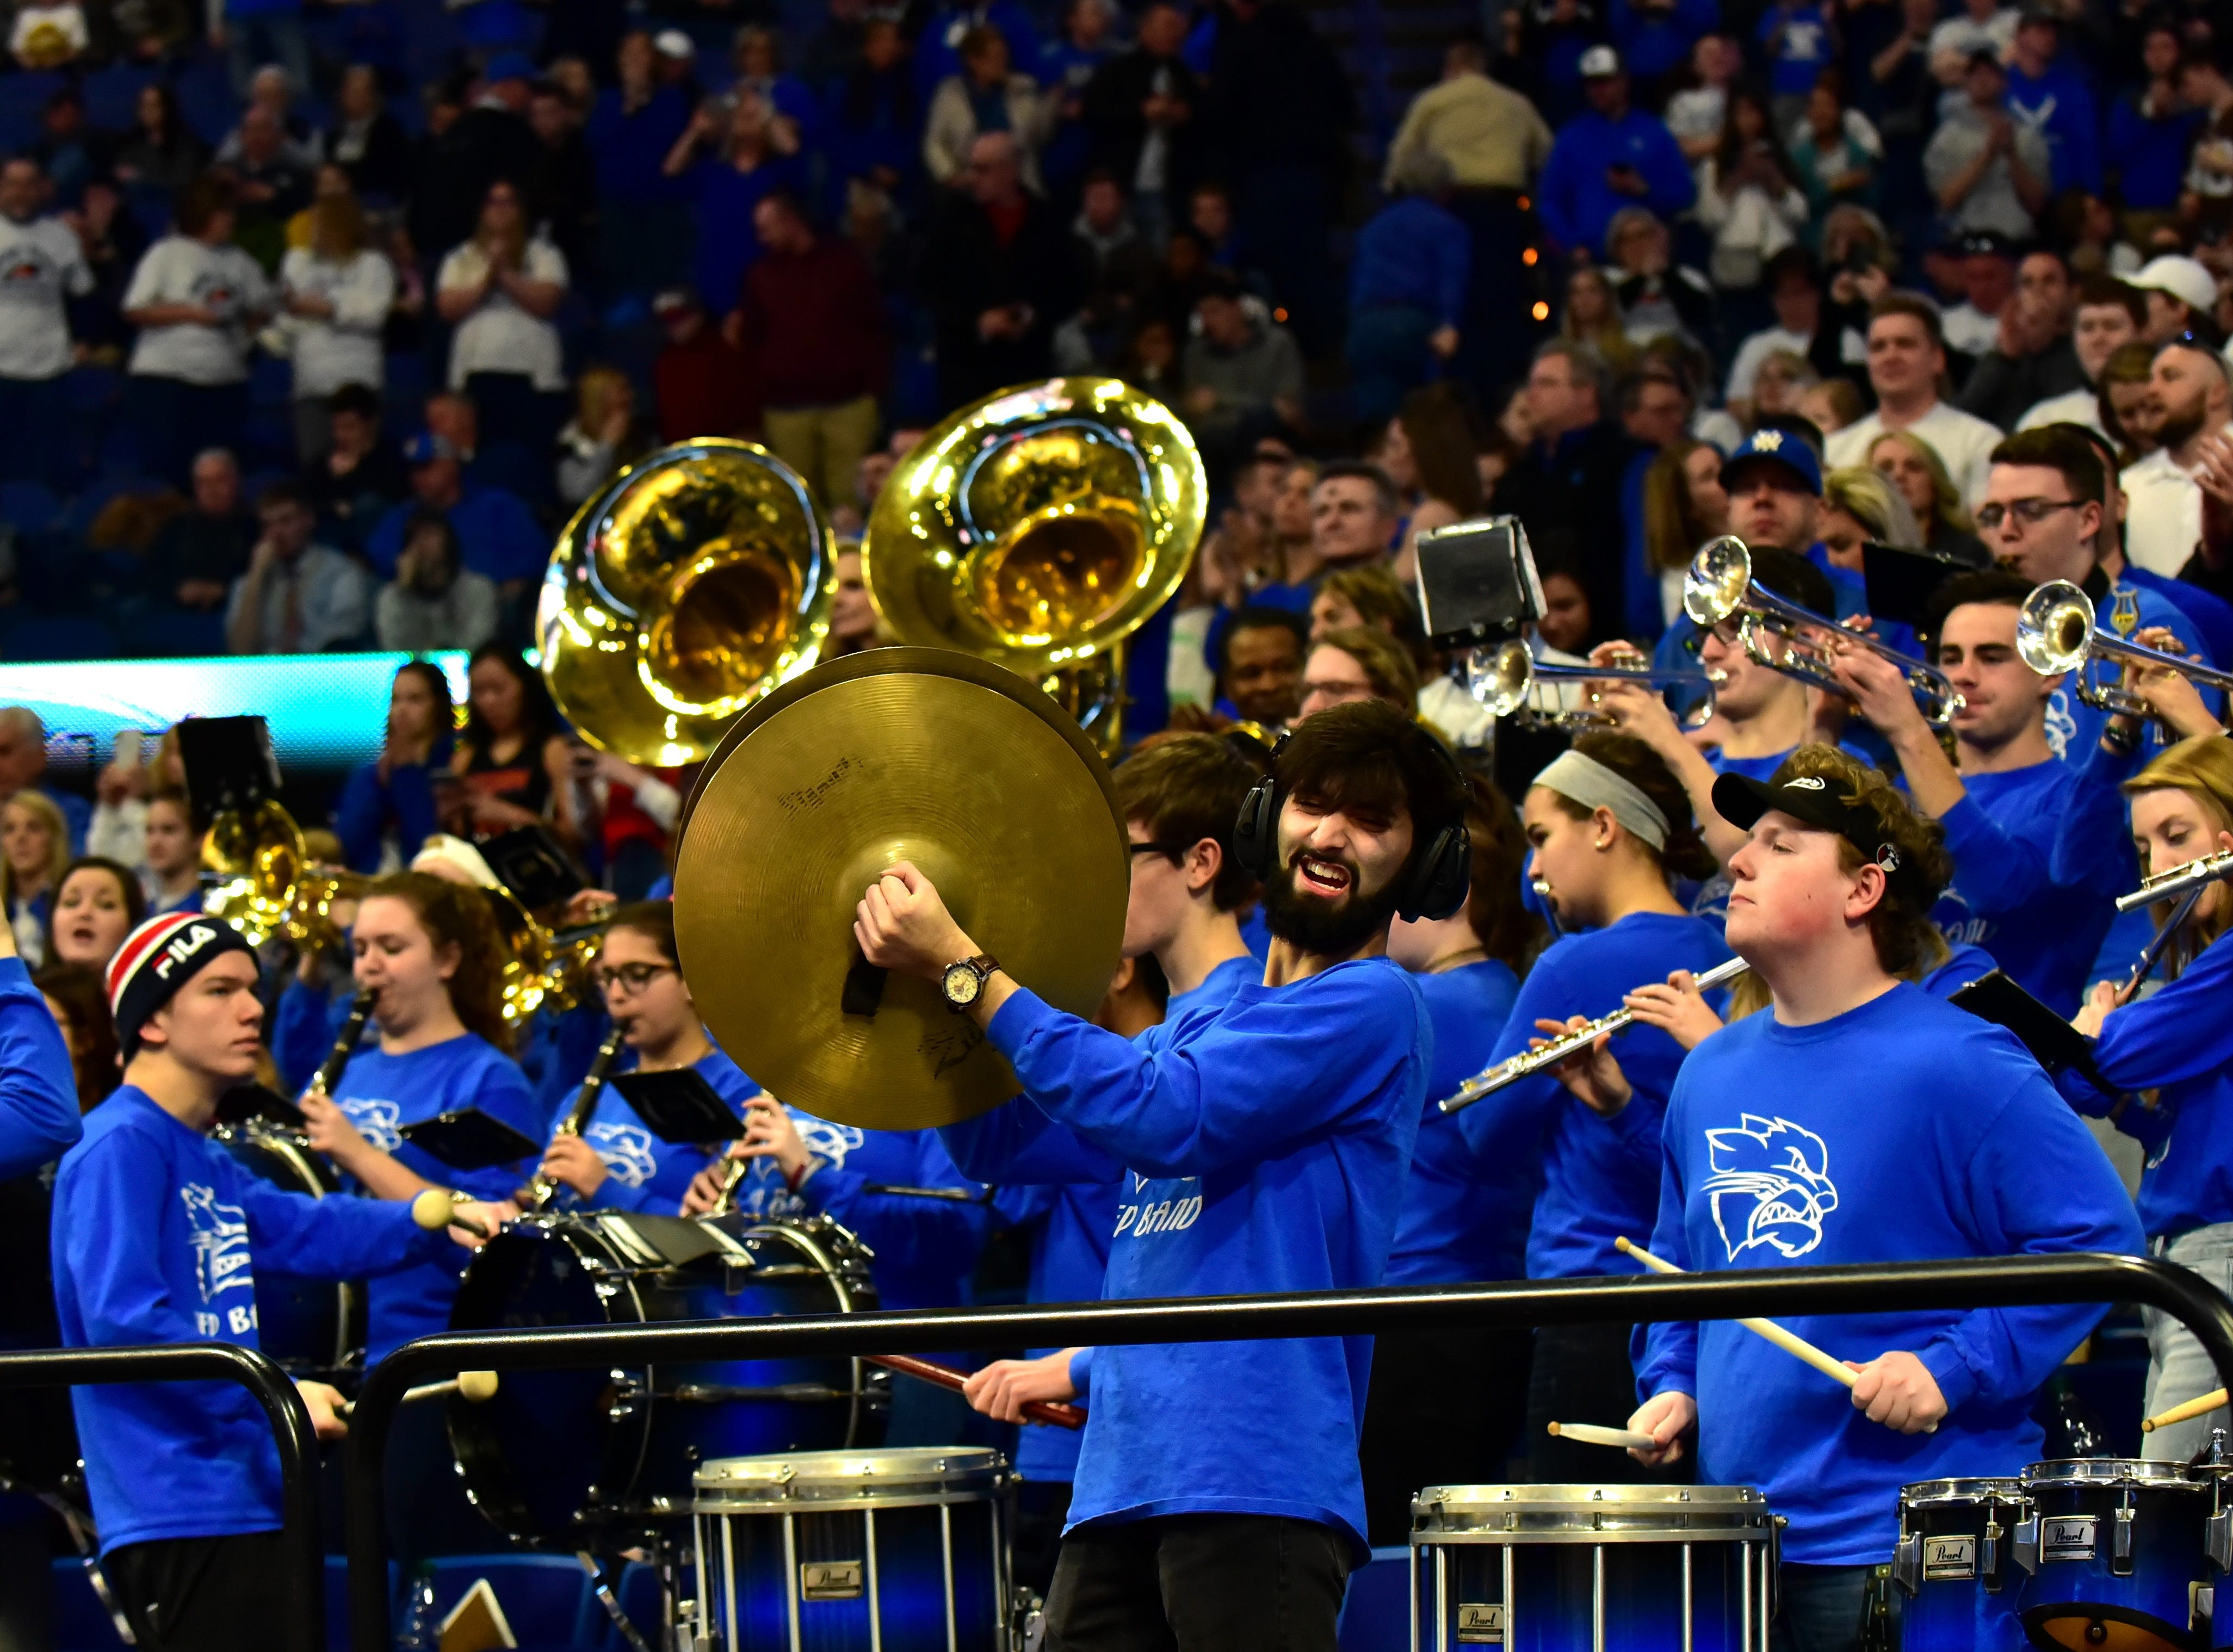 The Walton Verona band cheers the Bearcats back on the court for the final 3 minutes of play at the KHSAA Sweet 16 Tournament at Rupp Arena in Lexington, KY, March 6, 2019